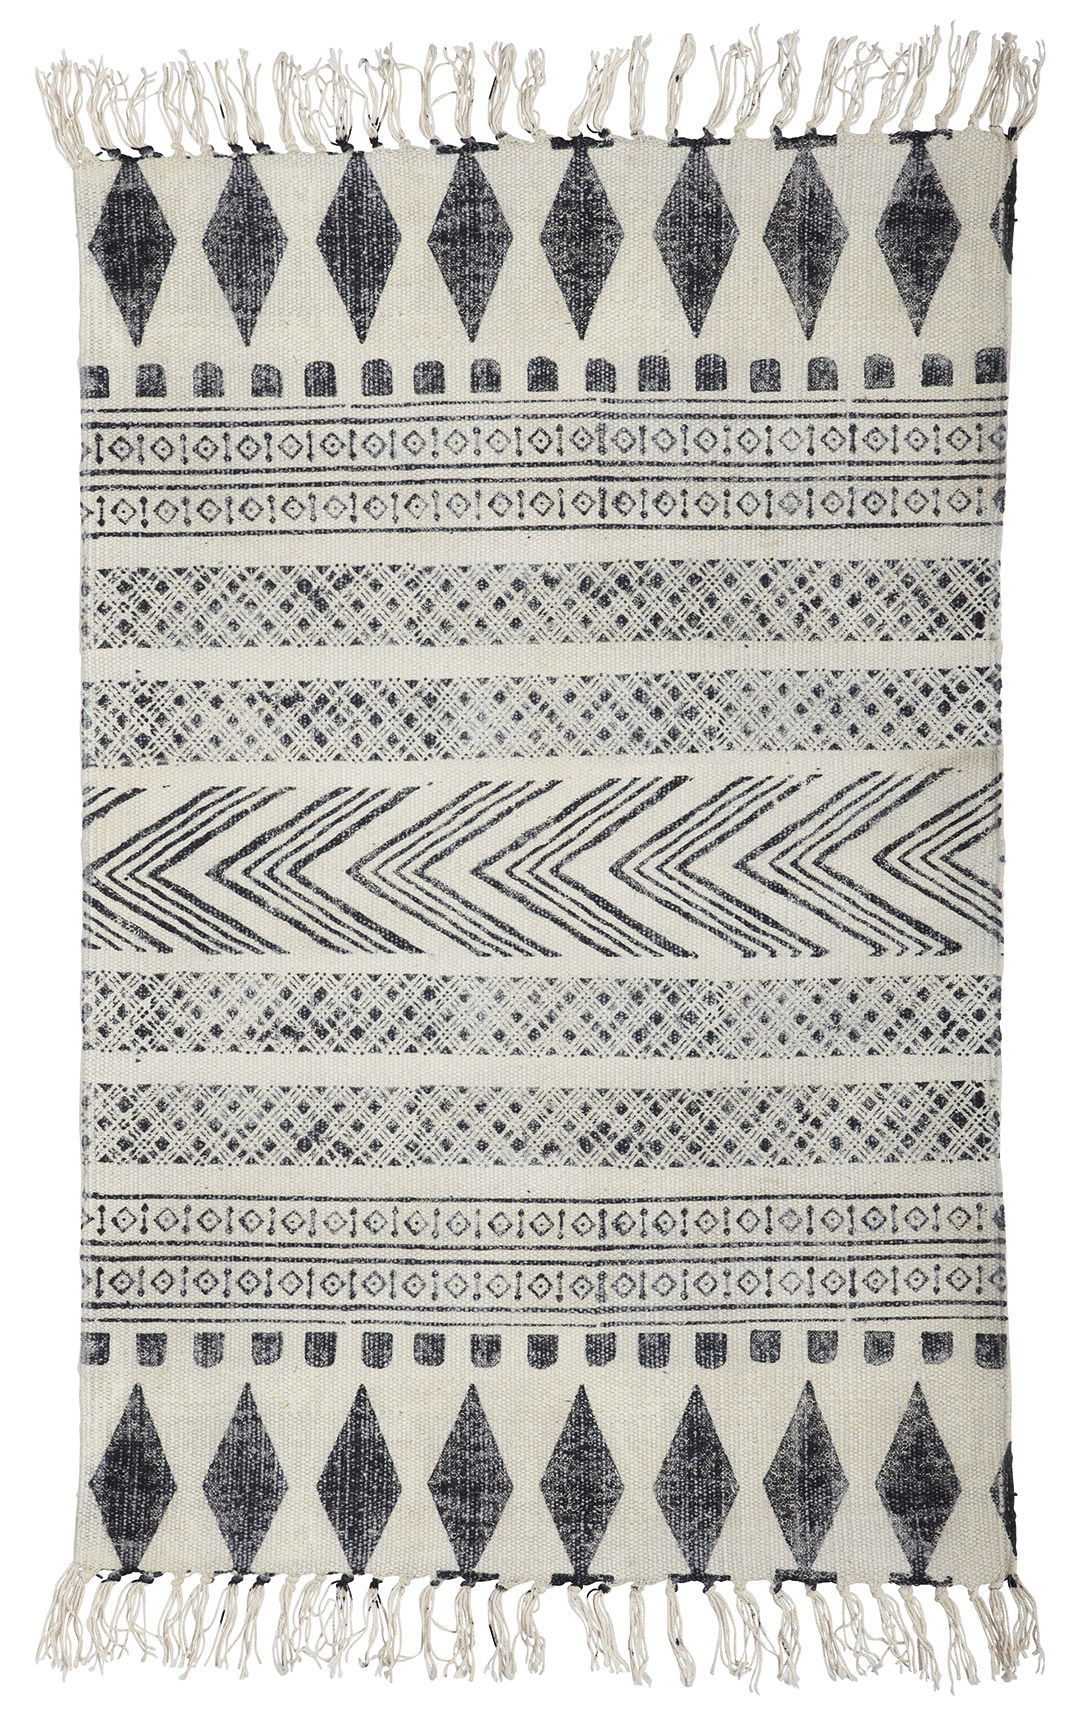 Decoration - Rugs - Block Rug - /90 x 200 cm by House Doctor - Block / grey & black - Cotton